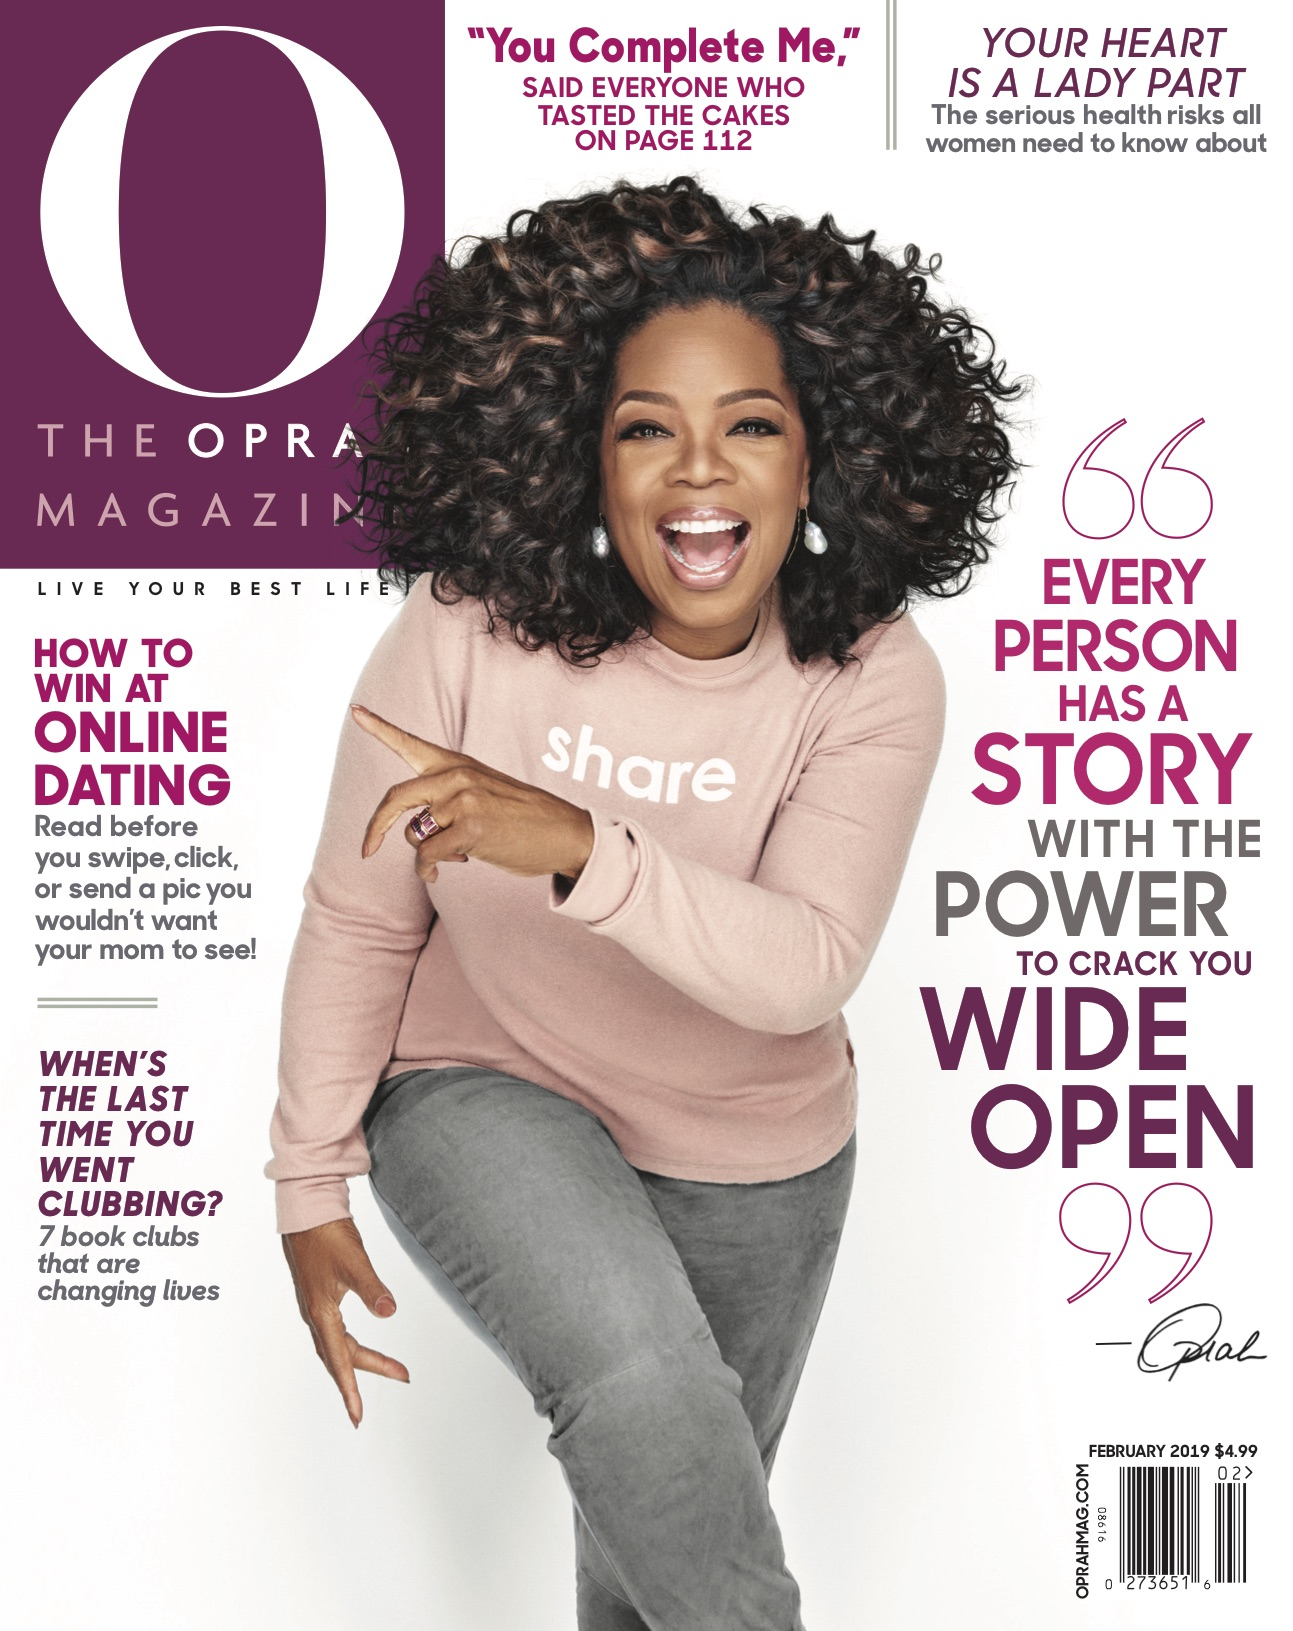 2019-2 Febuary - Cover of Oprah Magazine-FEATURED.jpg